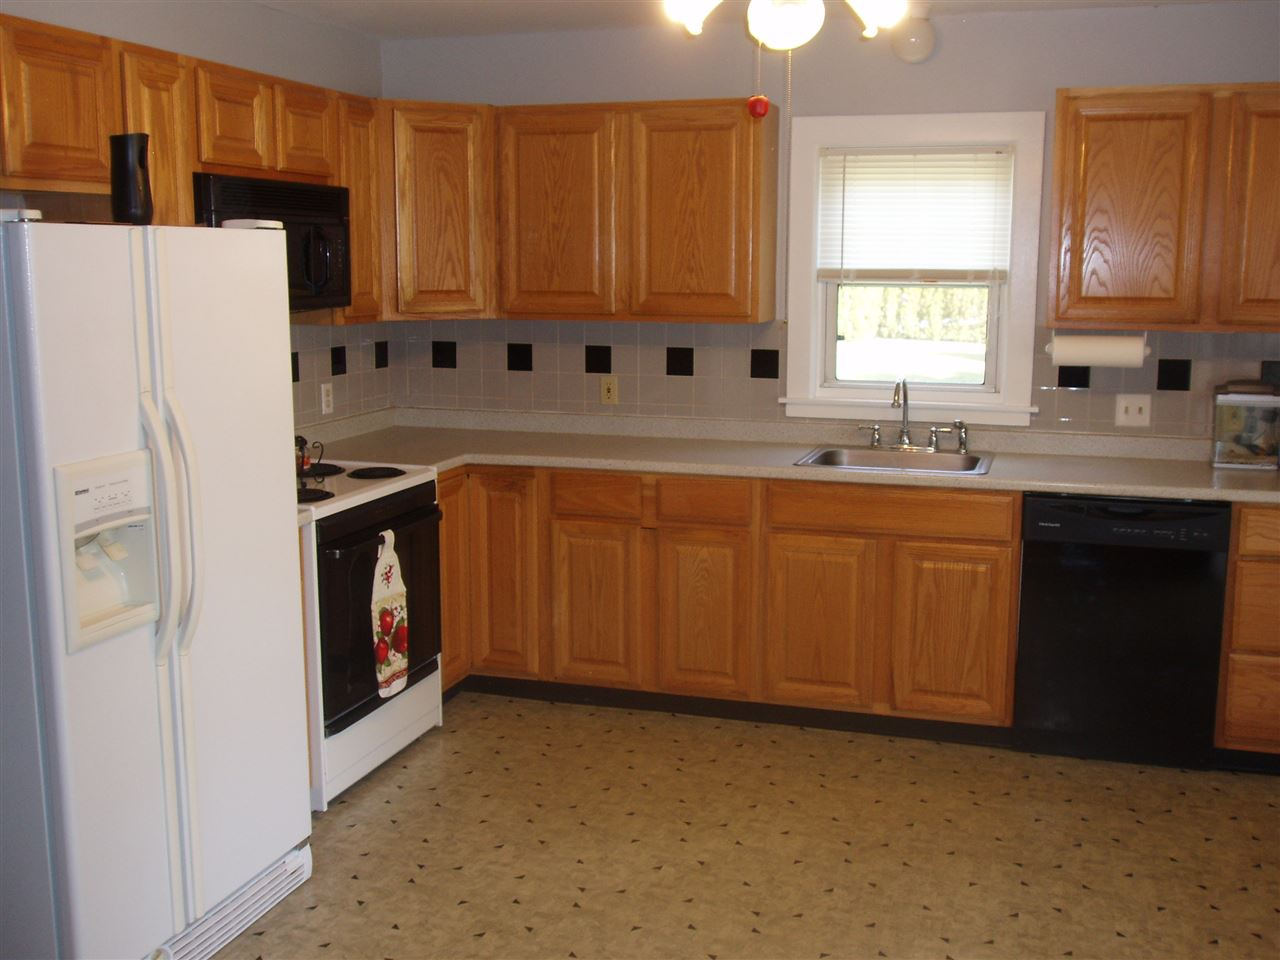 161 Calef Road, Manchester, NH 03103